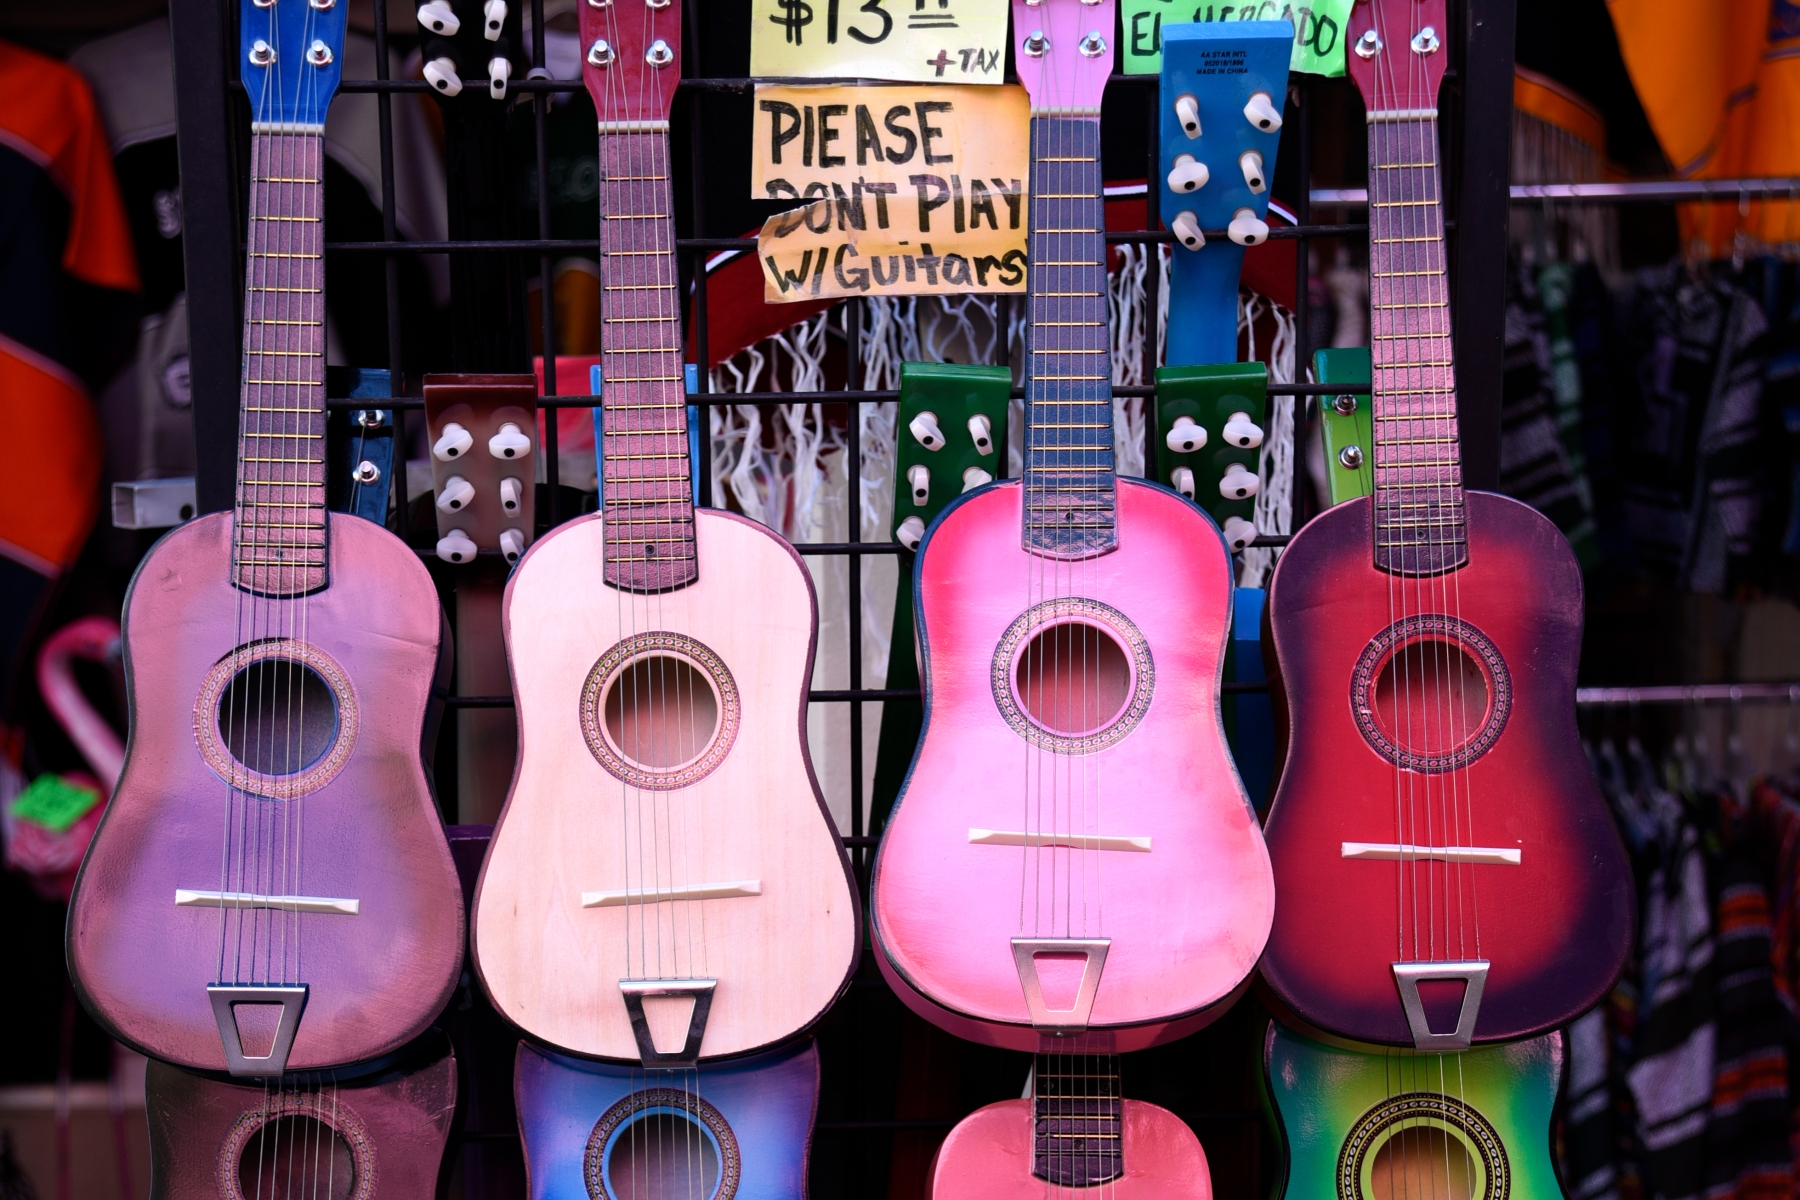 SAN ANTONIO, TEXAS - DECEMBER 9, 2018:  Colorful children's guitars are among items for sale at a shop in the Historic Market Square, also known as El Mercado, in San Antonio, Texas. (Photo by Robert Alexander/Getty Images)